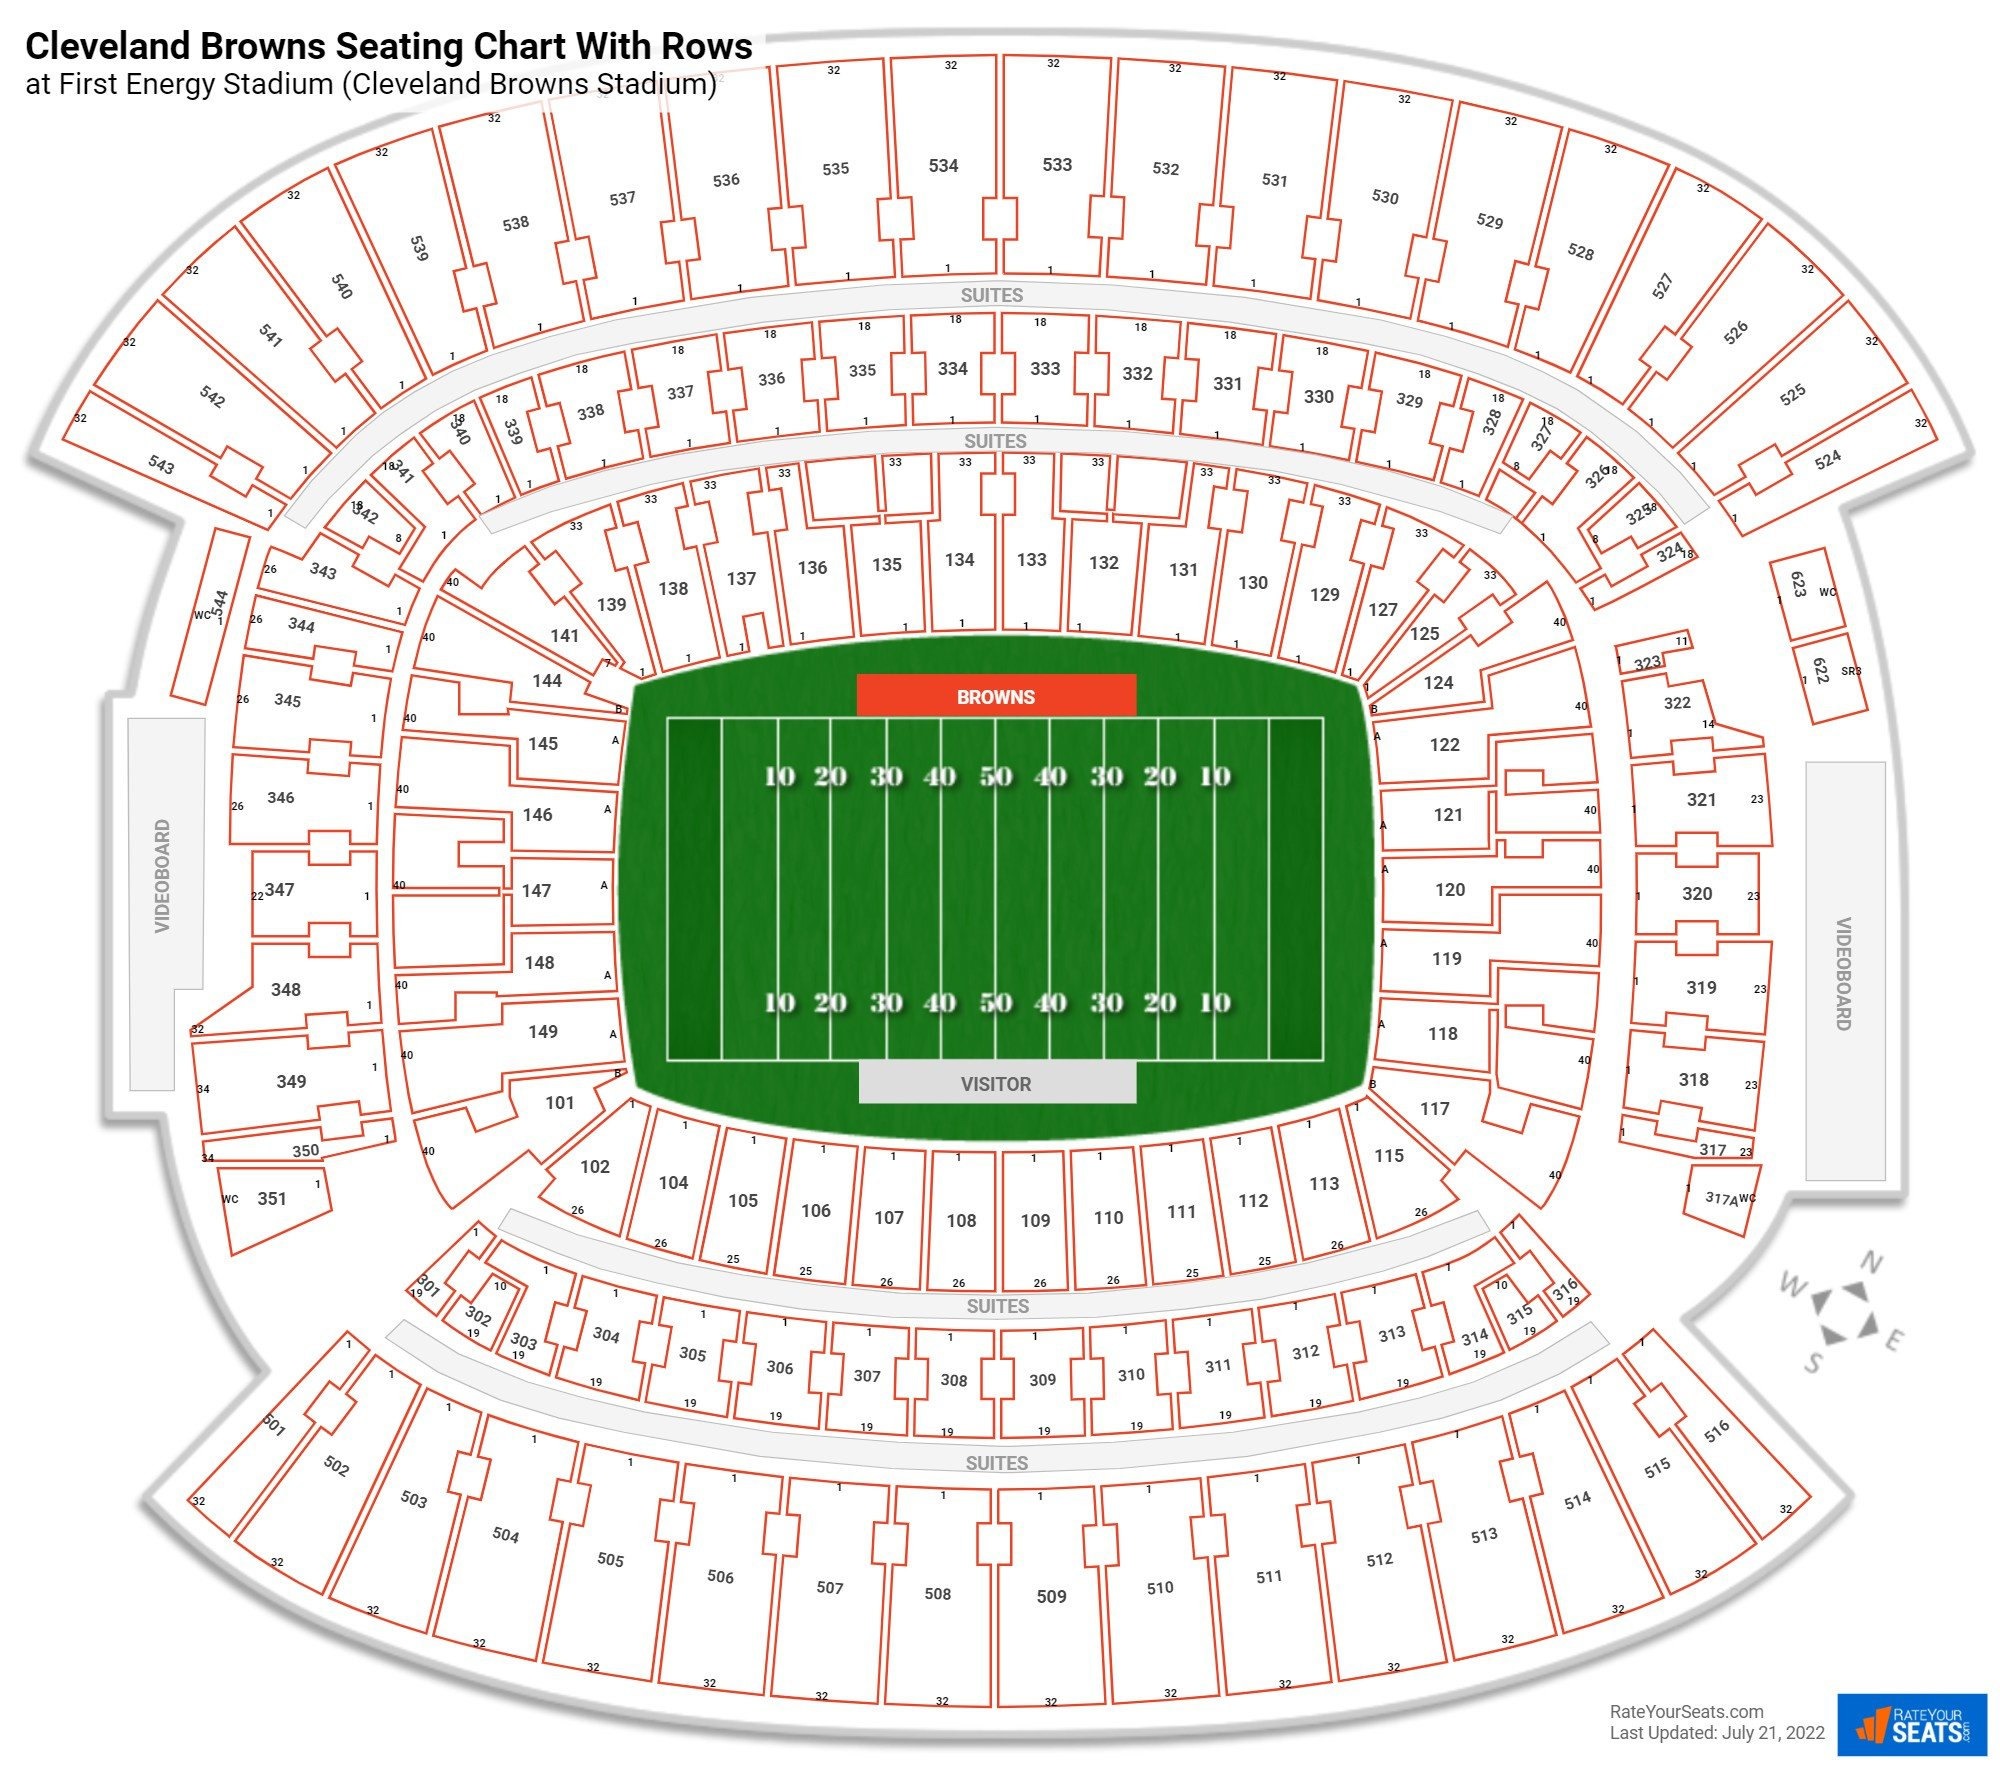 First Energy Stadium (Cleveland Browns Stadium) seating chart with rows